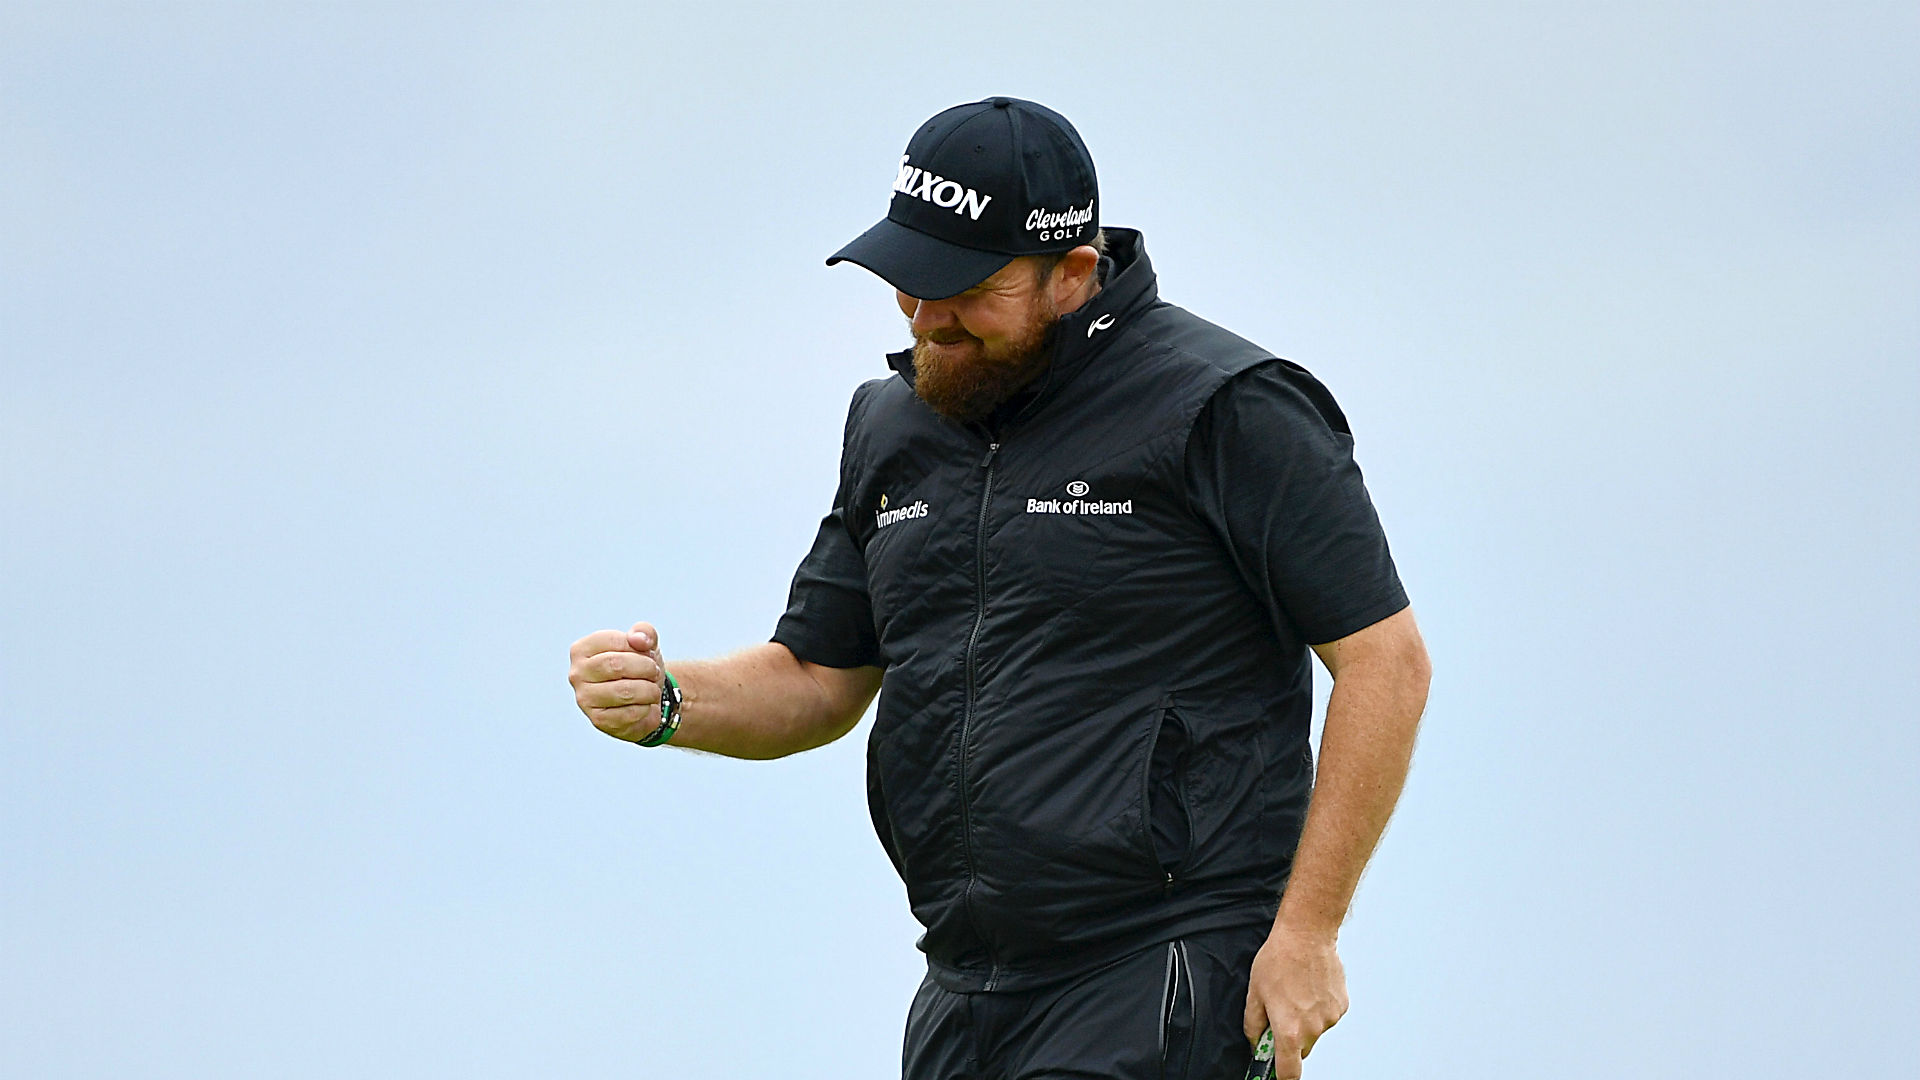 British Open 2019: Results, highlights from Shane Lowry's victory at Royal Portrush